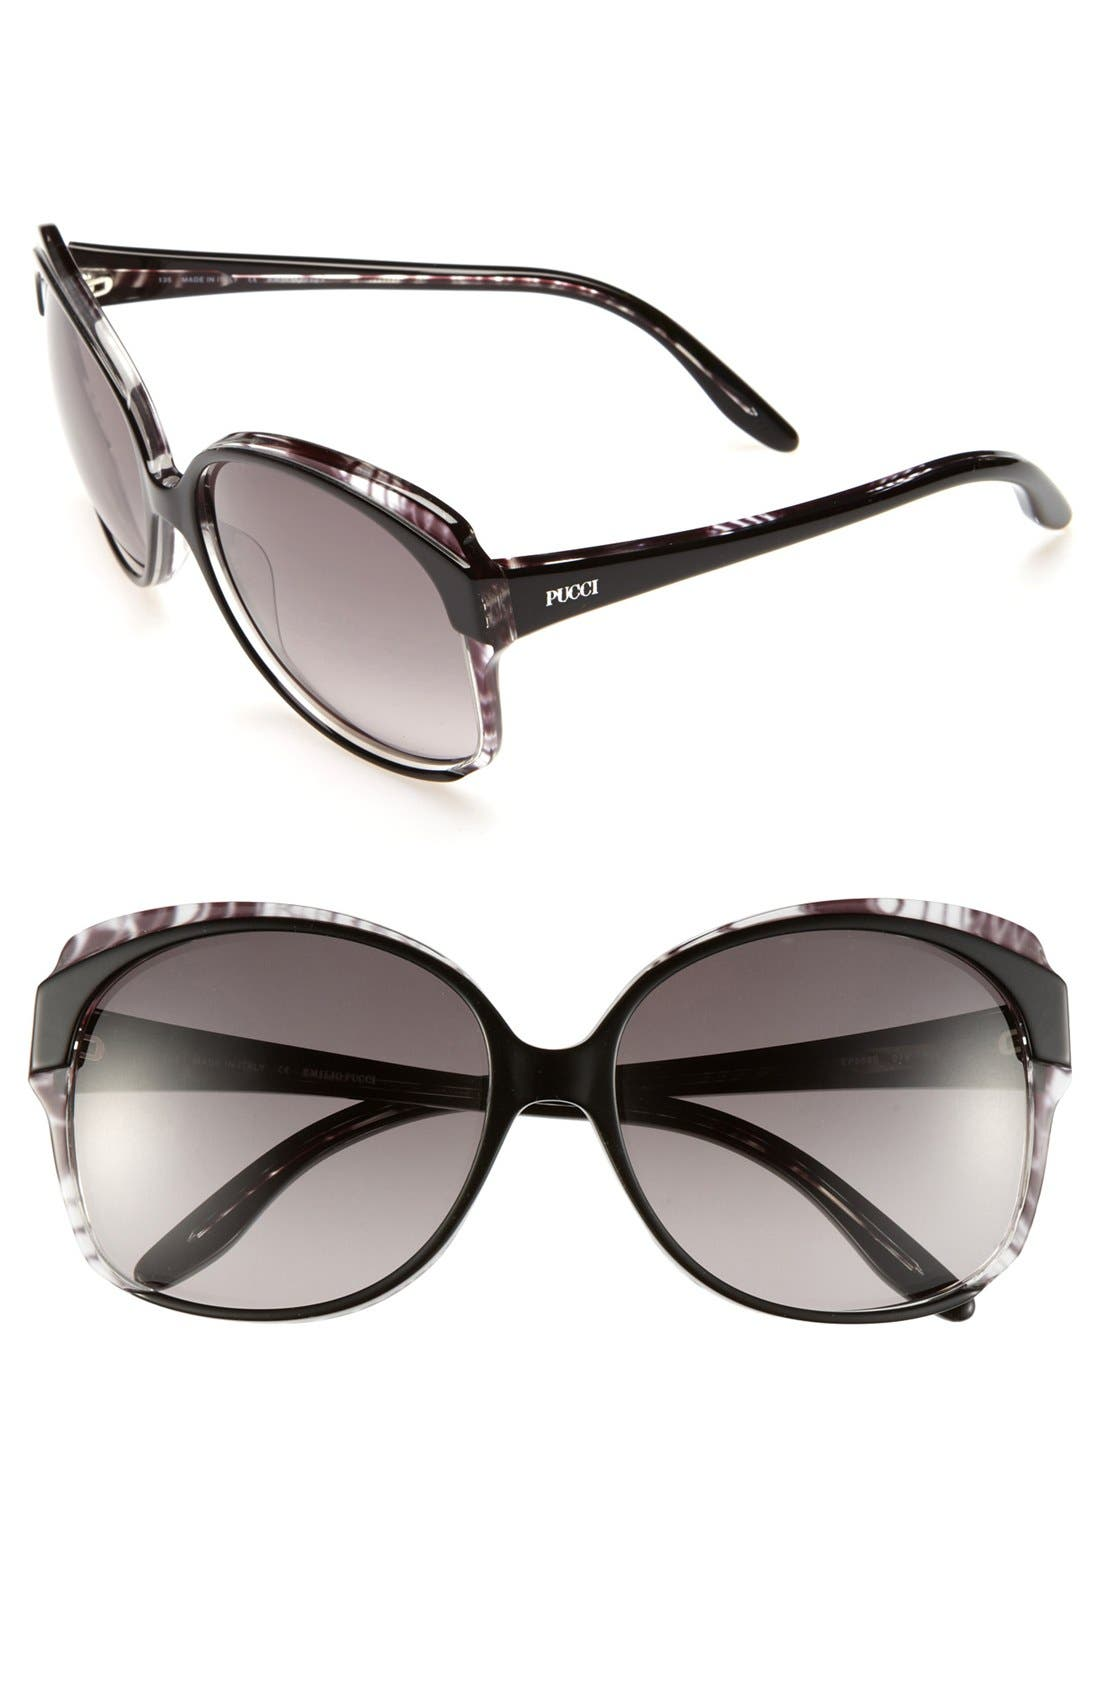 Alternate Image 1 Selected - Emilio Pucci 58mm Sunglasses (Special Purchase)